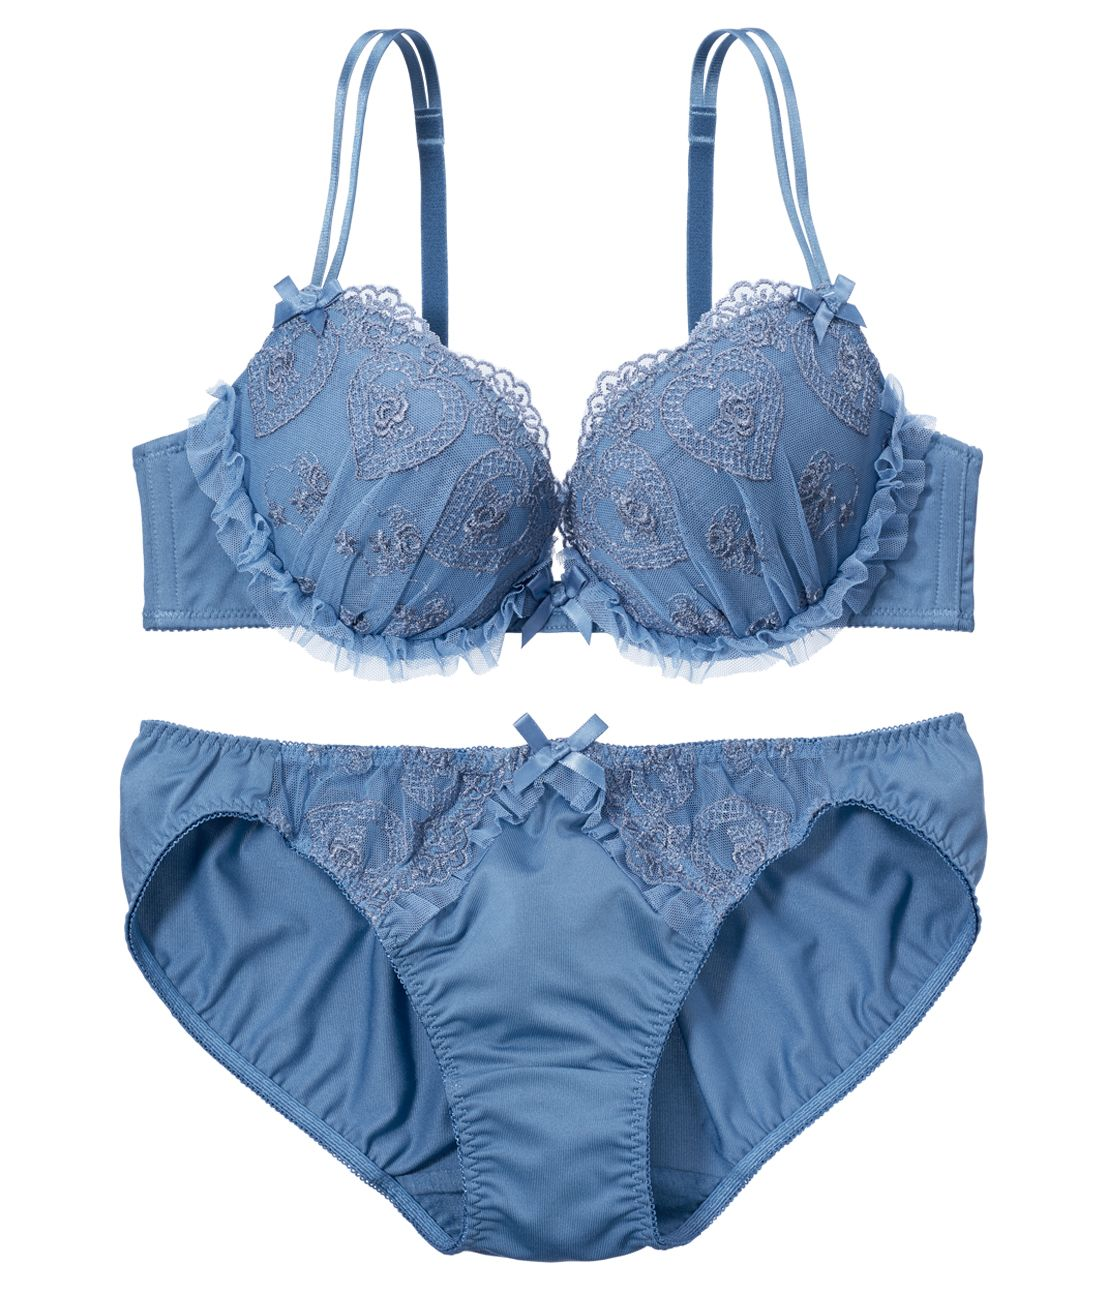 YM collet Bra Set